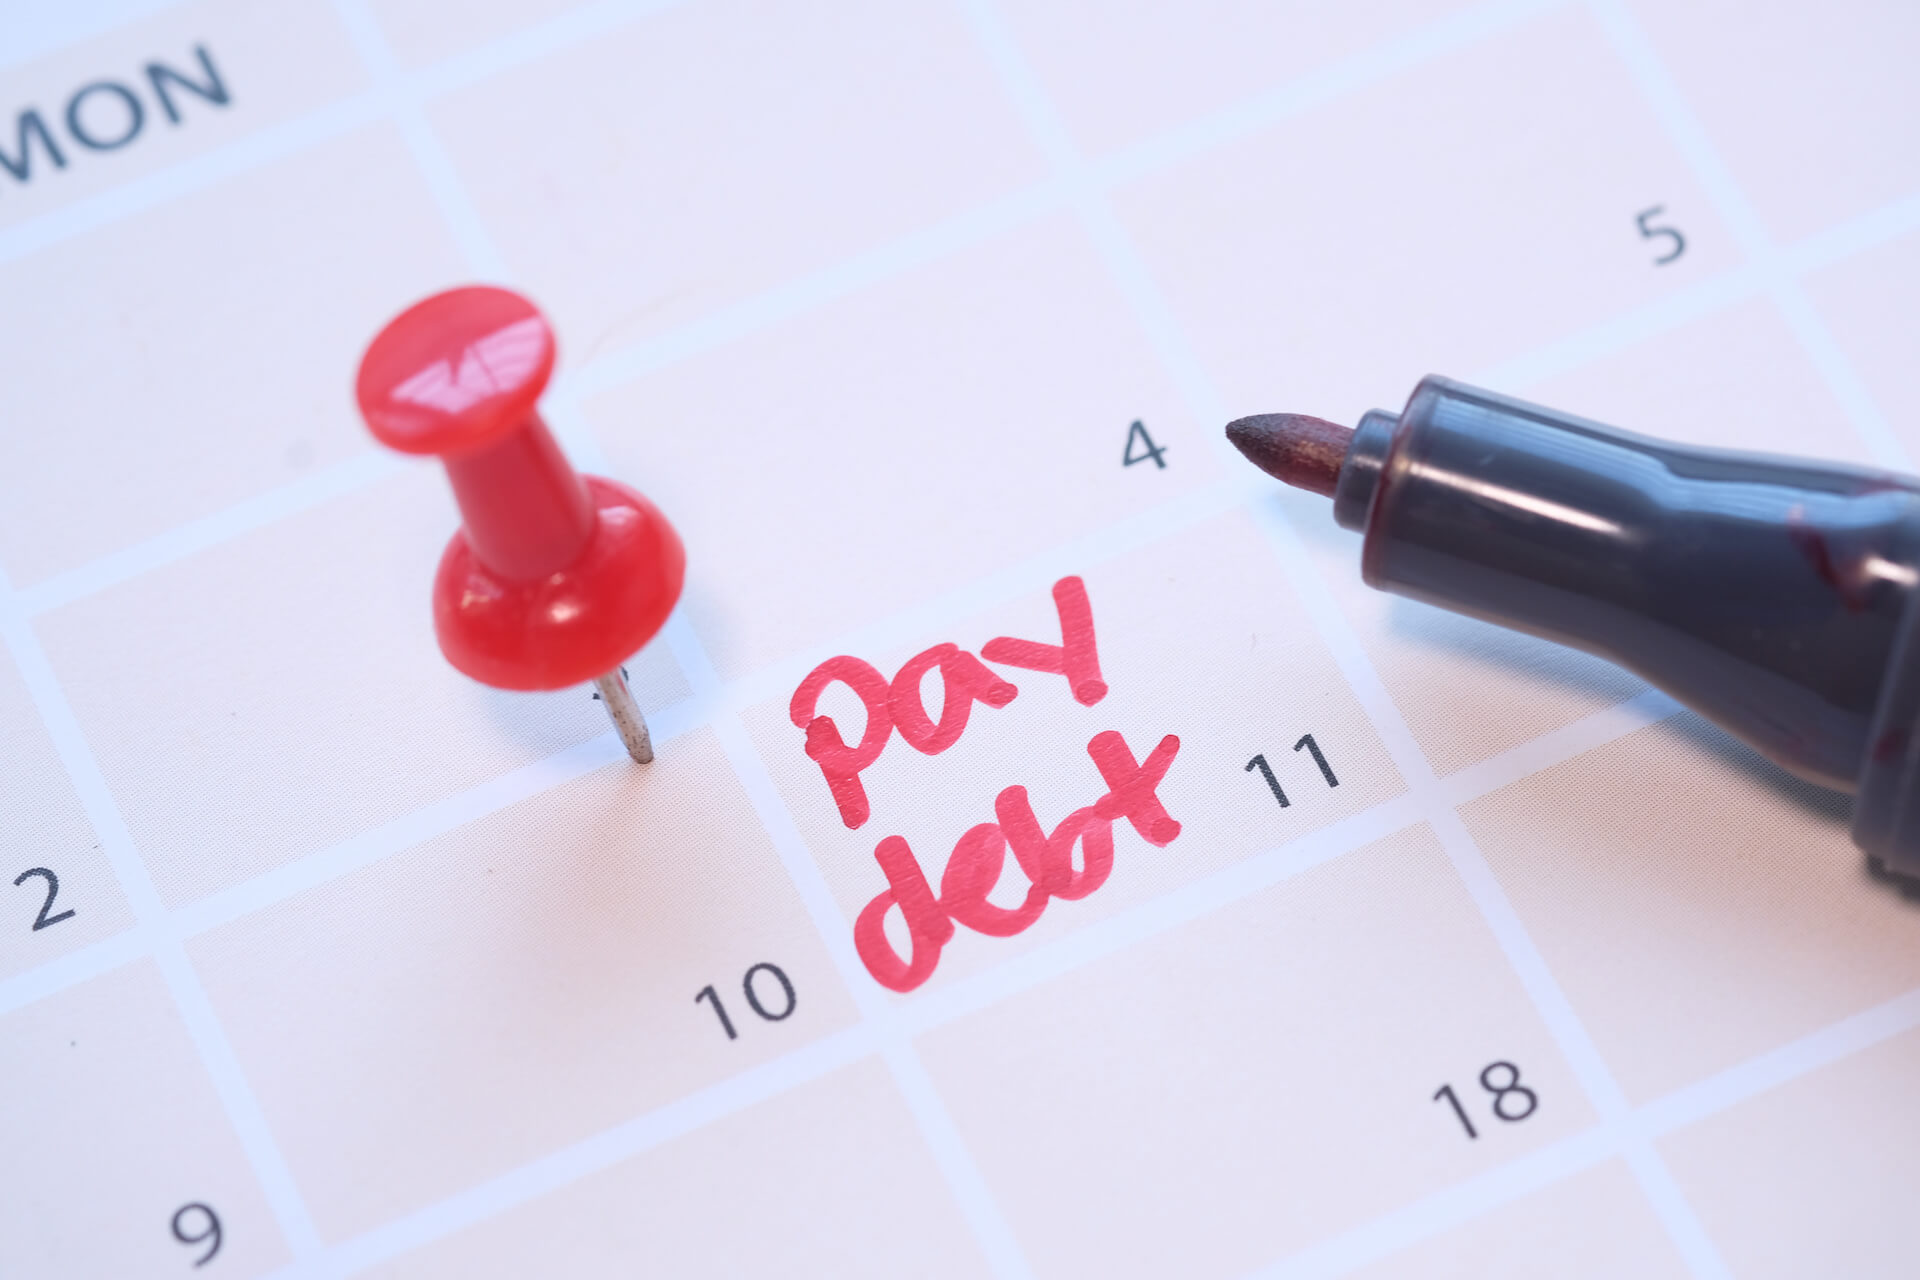 Pay debt reminder on calendar